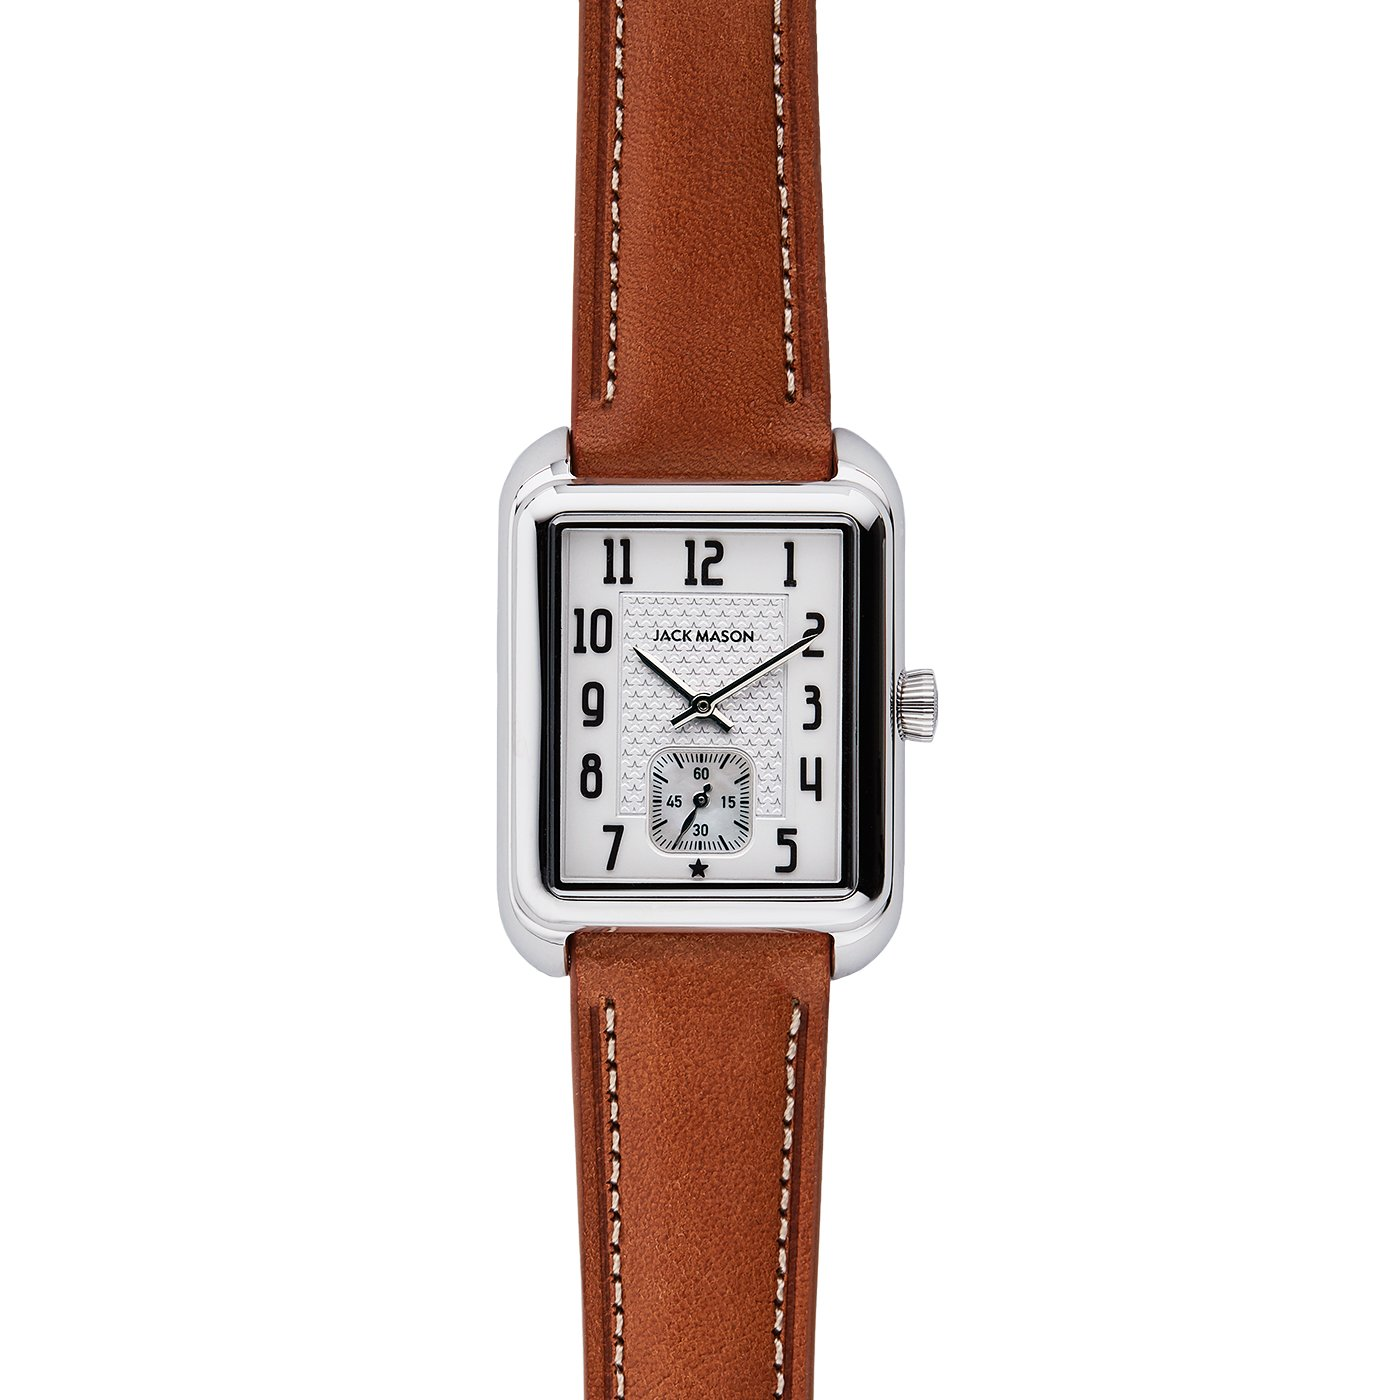 Jack Mason Issue No 2 Stainless Steel Sub Second White Dial Tan Leather Strap